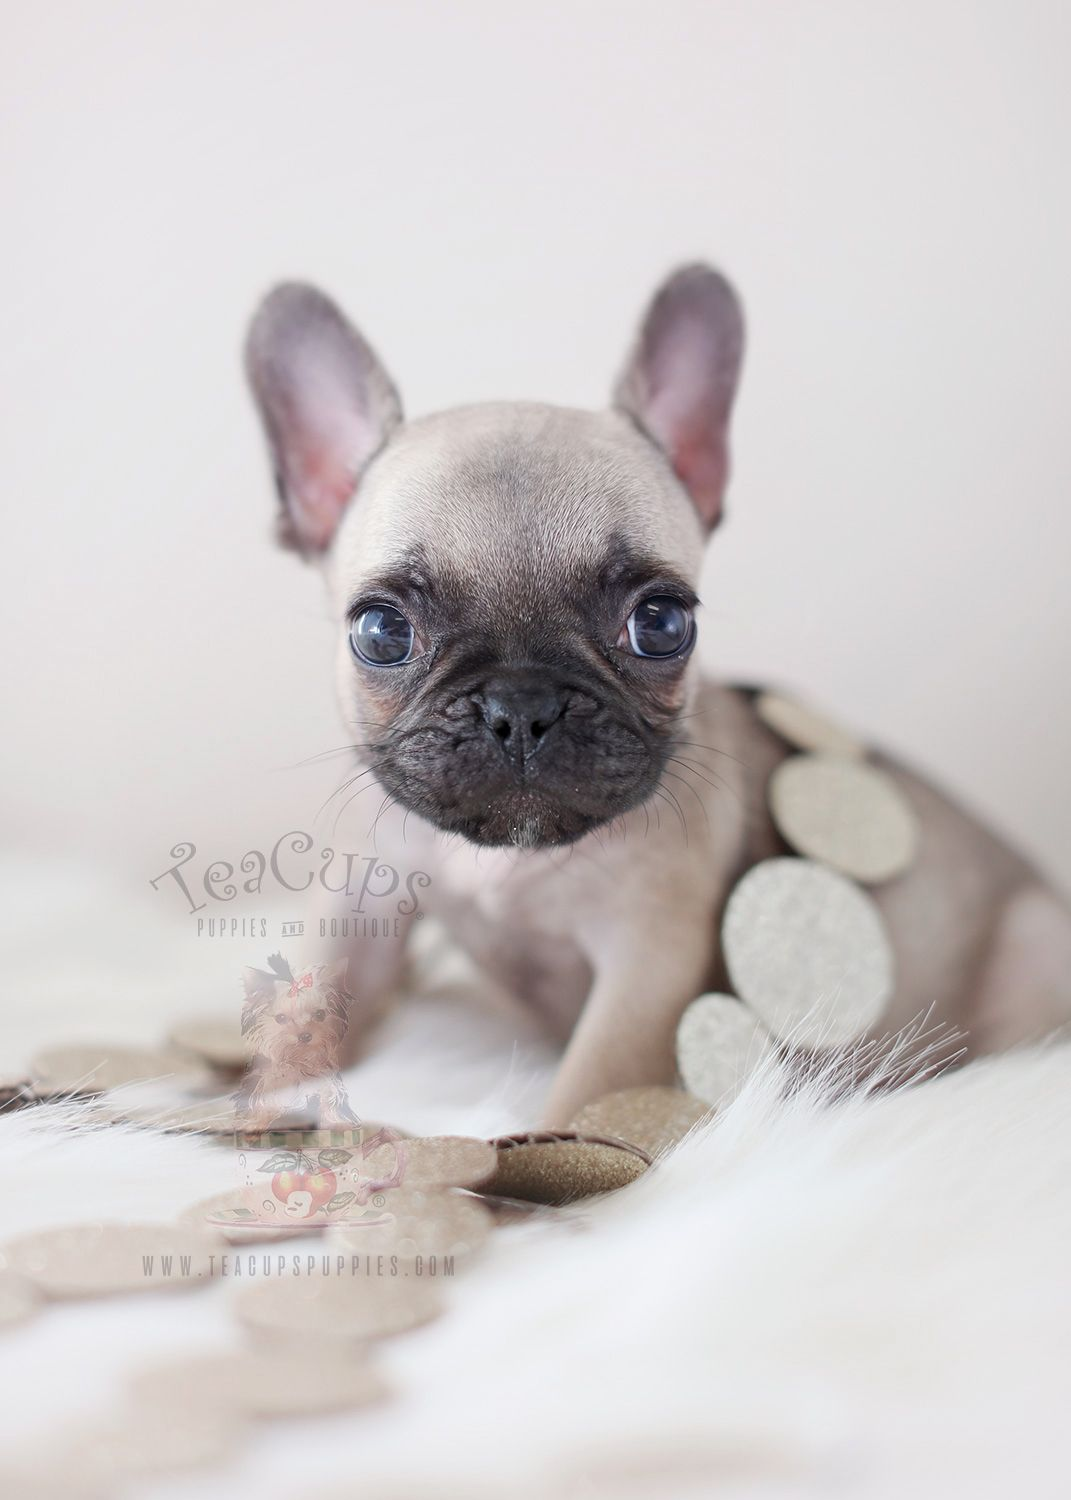 Tiny French Bulldog Puppy 382 For Sale By Teacup Puppies Bulldog Puppies French Bulldog Puppies Teacup Puppies